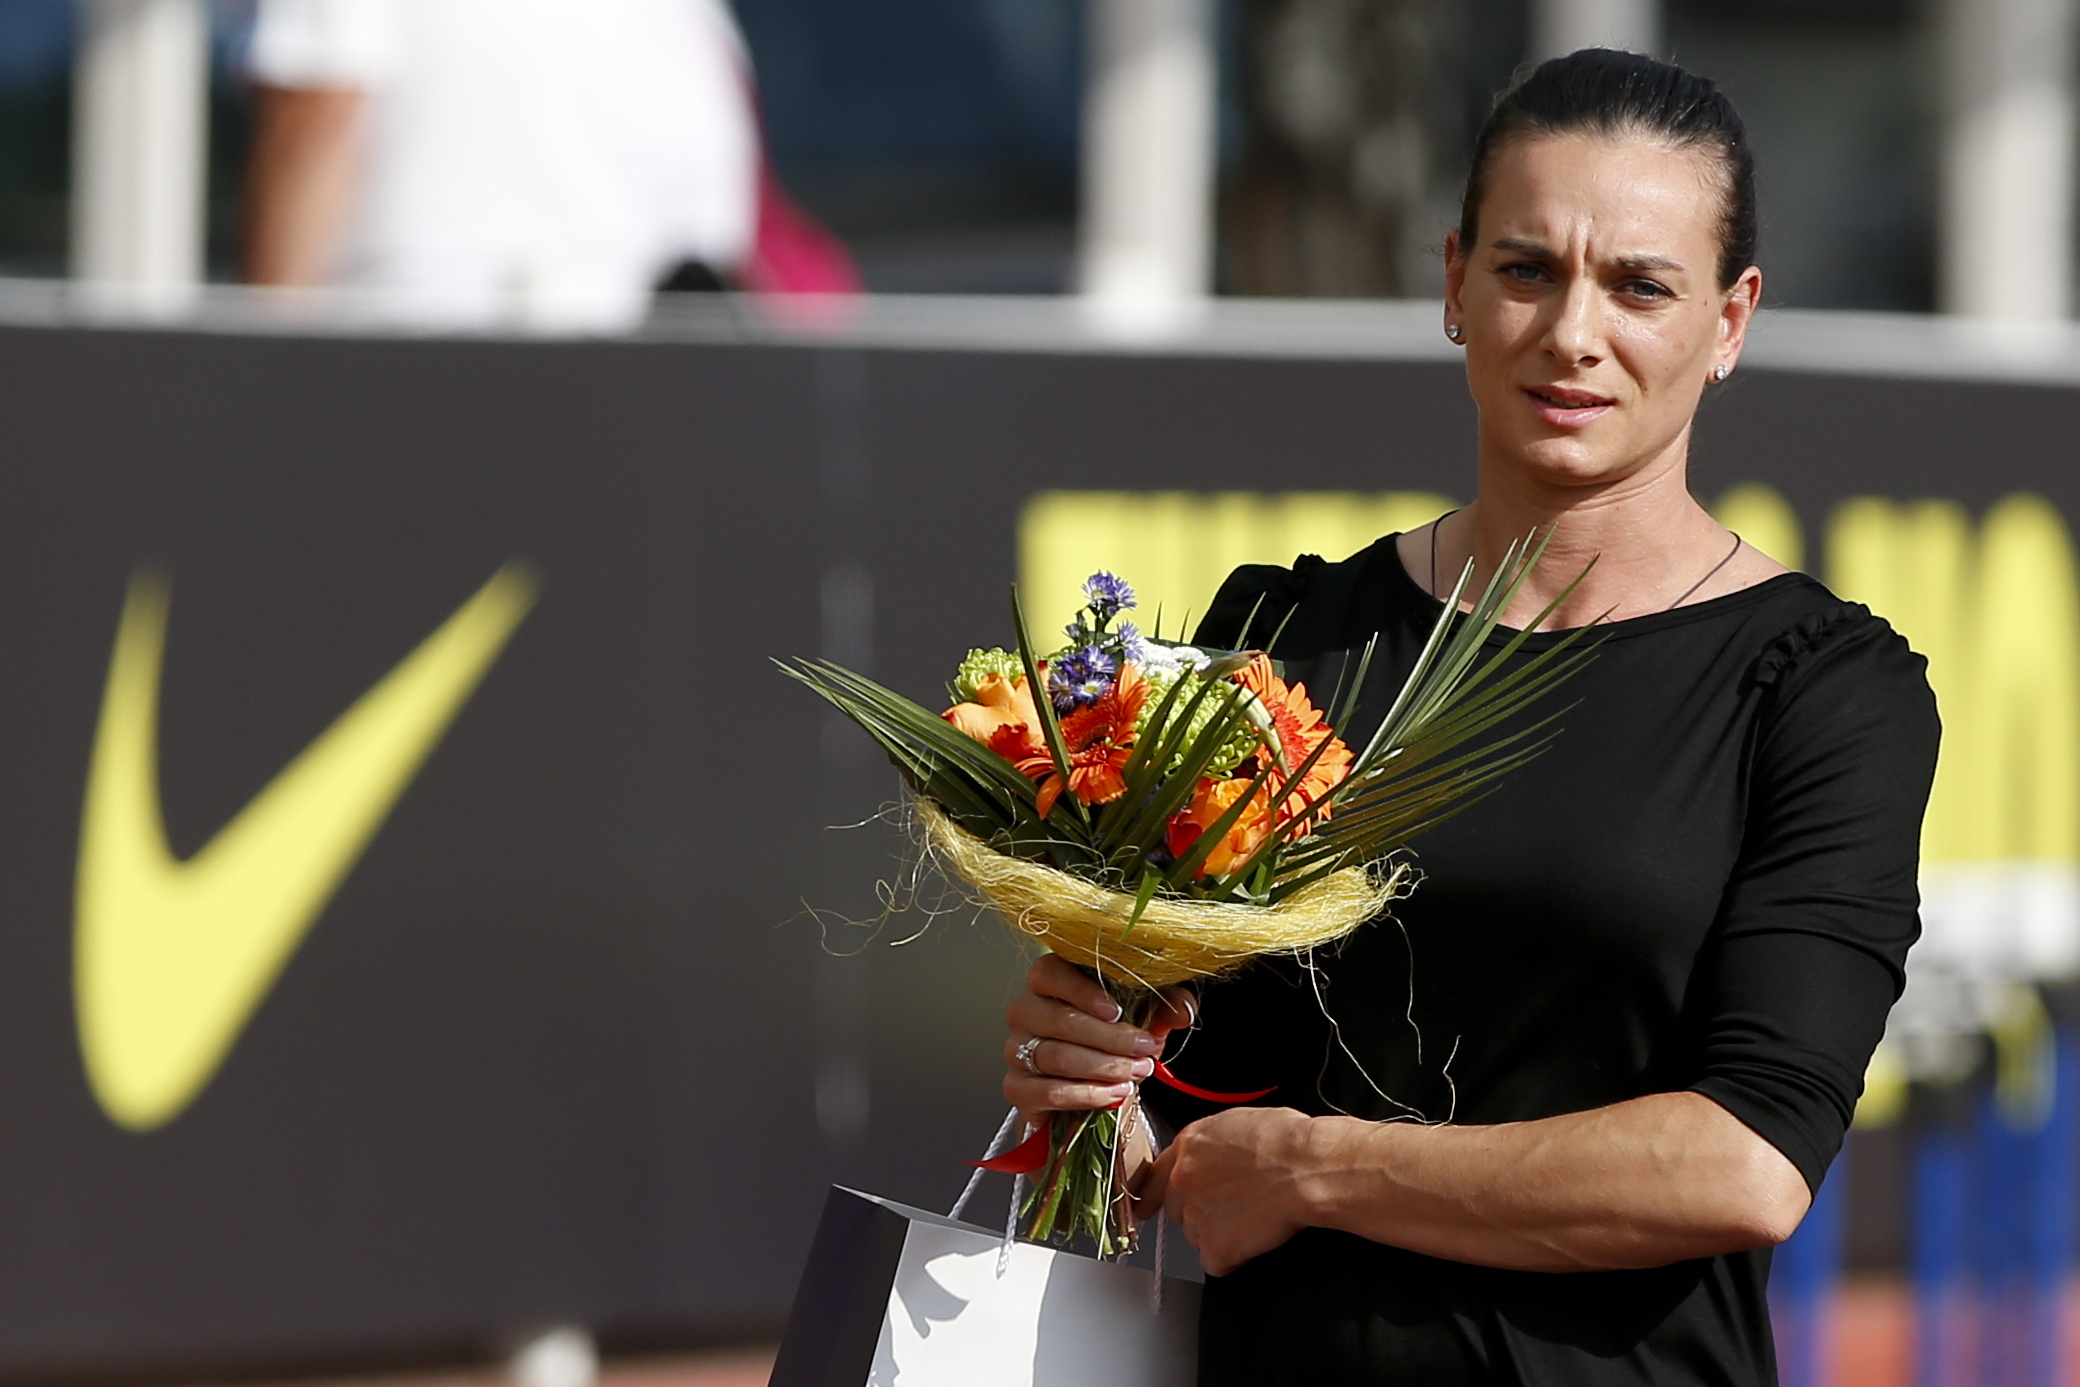 FILE - In this July 28, 2016 file photo, Russia's pole vaulter and Olympic champion Yelena Isinbayeva holds a bouquet of flowers as she attends an opening ceremony of the Russian Stars 2016 track and field competitions in Moscow, Russia. Isinbayeva has be